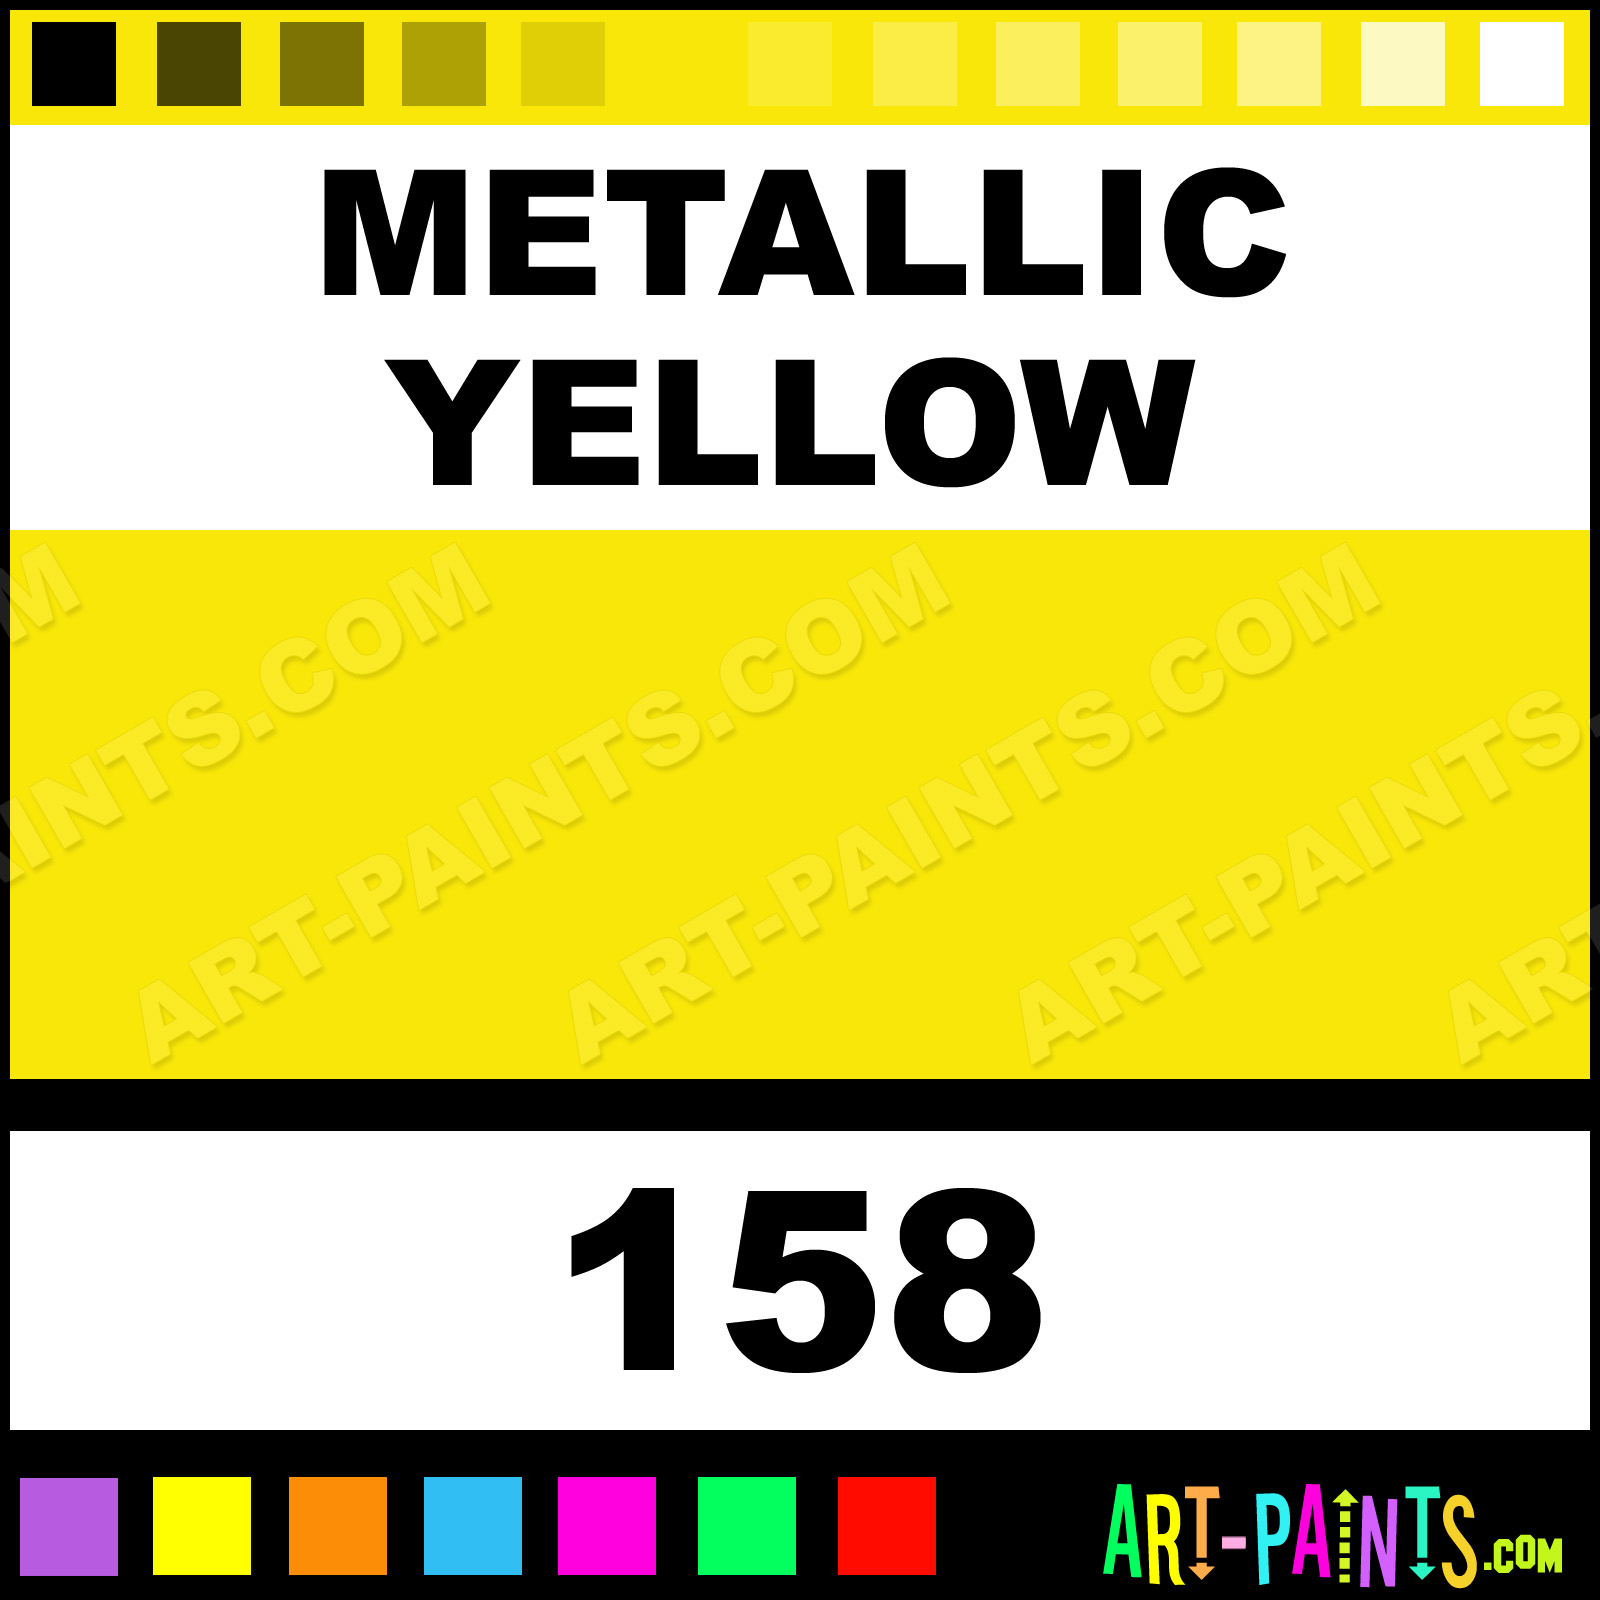 Metallic yellow metallic airbrush spray paints 158 for Metallic yellow paint